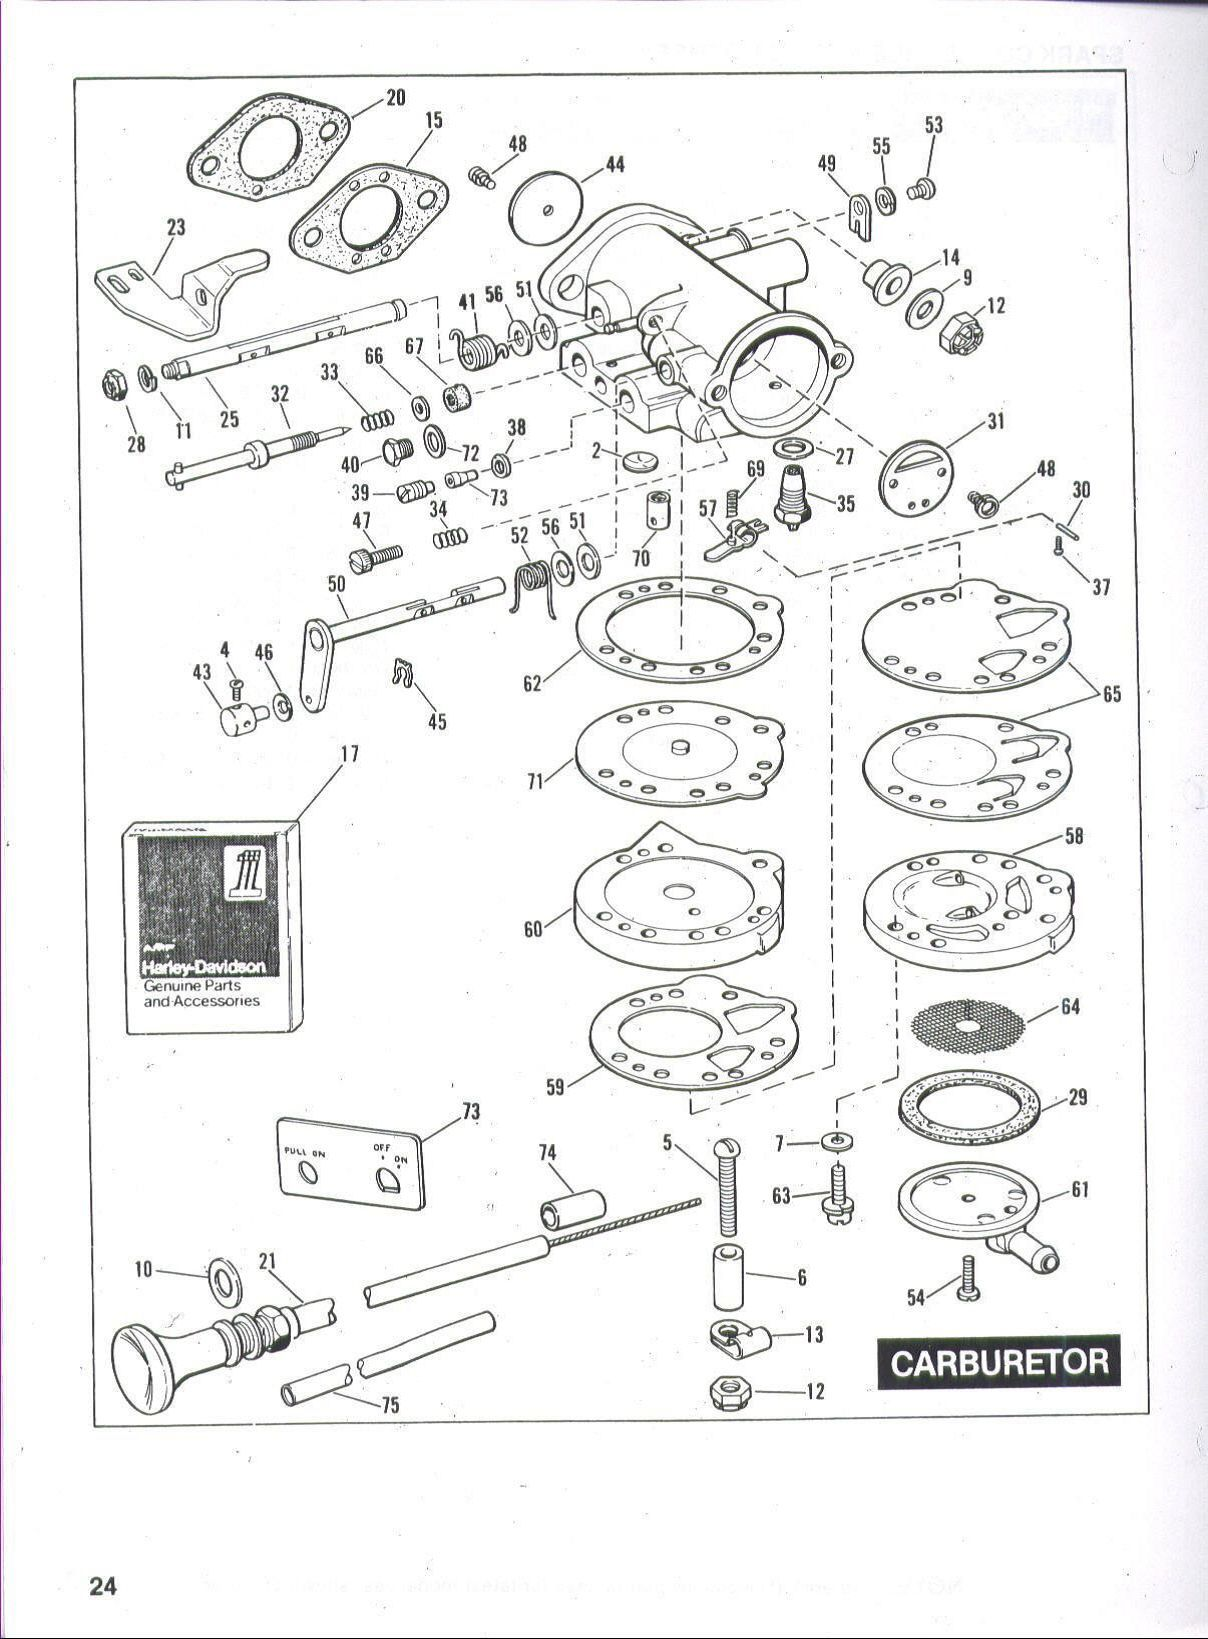 Harley-Davidson Golf Cart Carburetor Diagram | UTV stuff ...